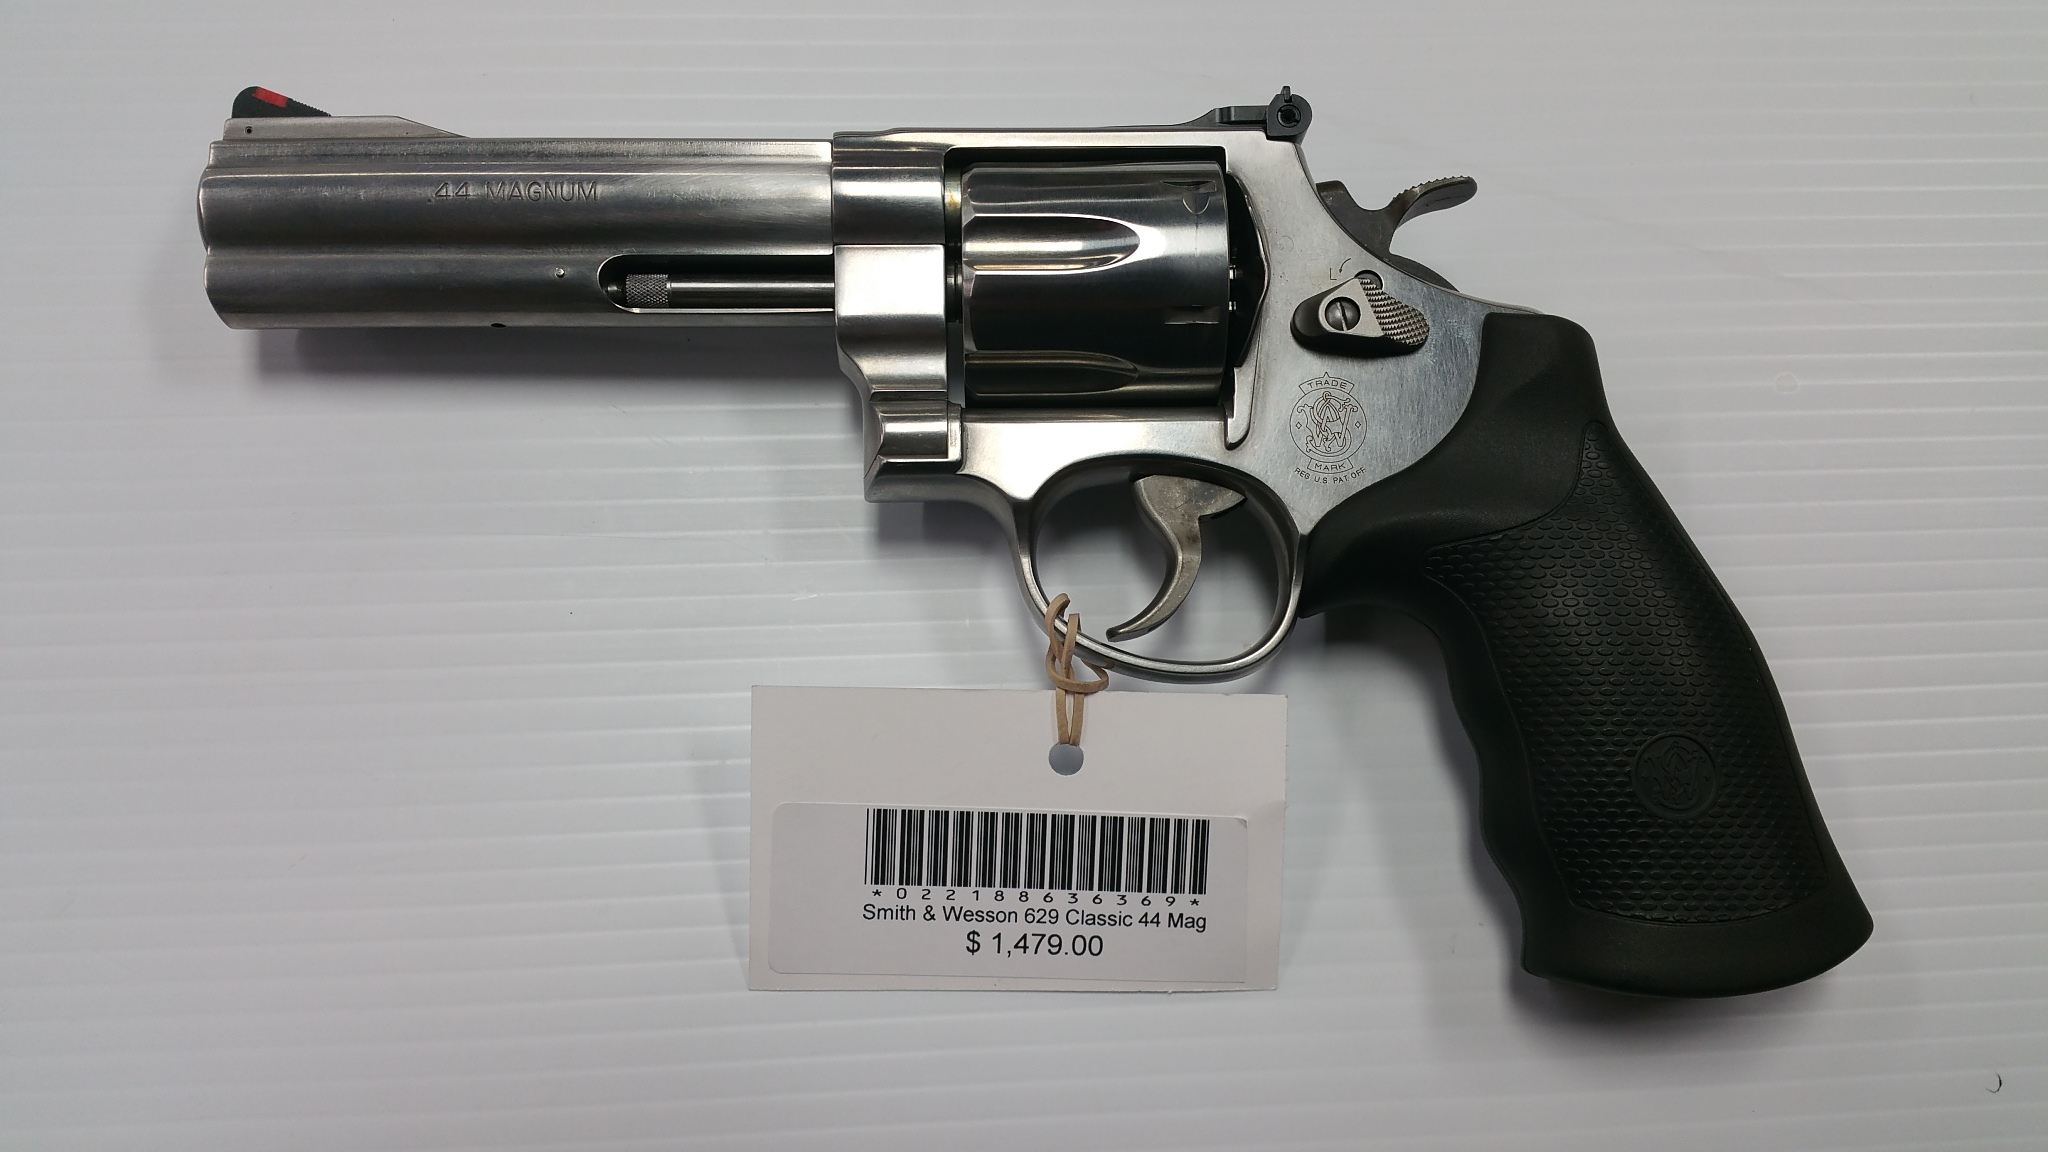 Smith & Wesson 629 .44 magnum